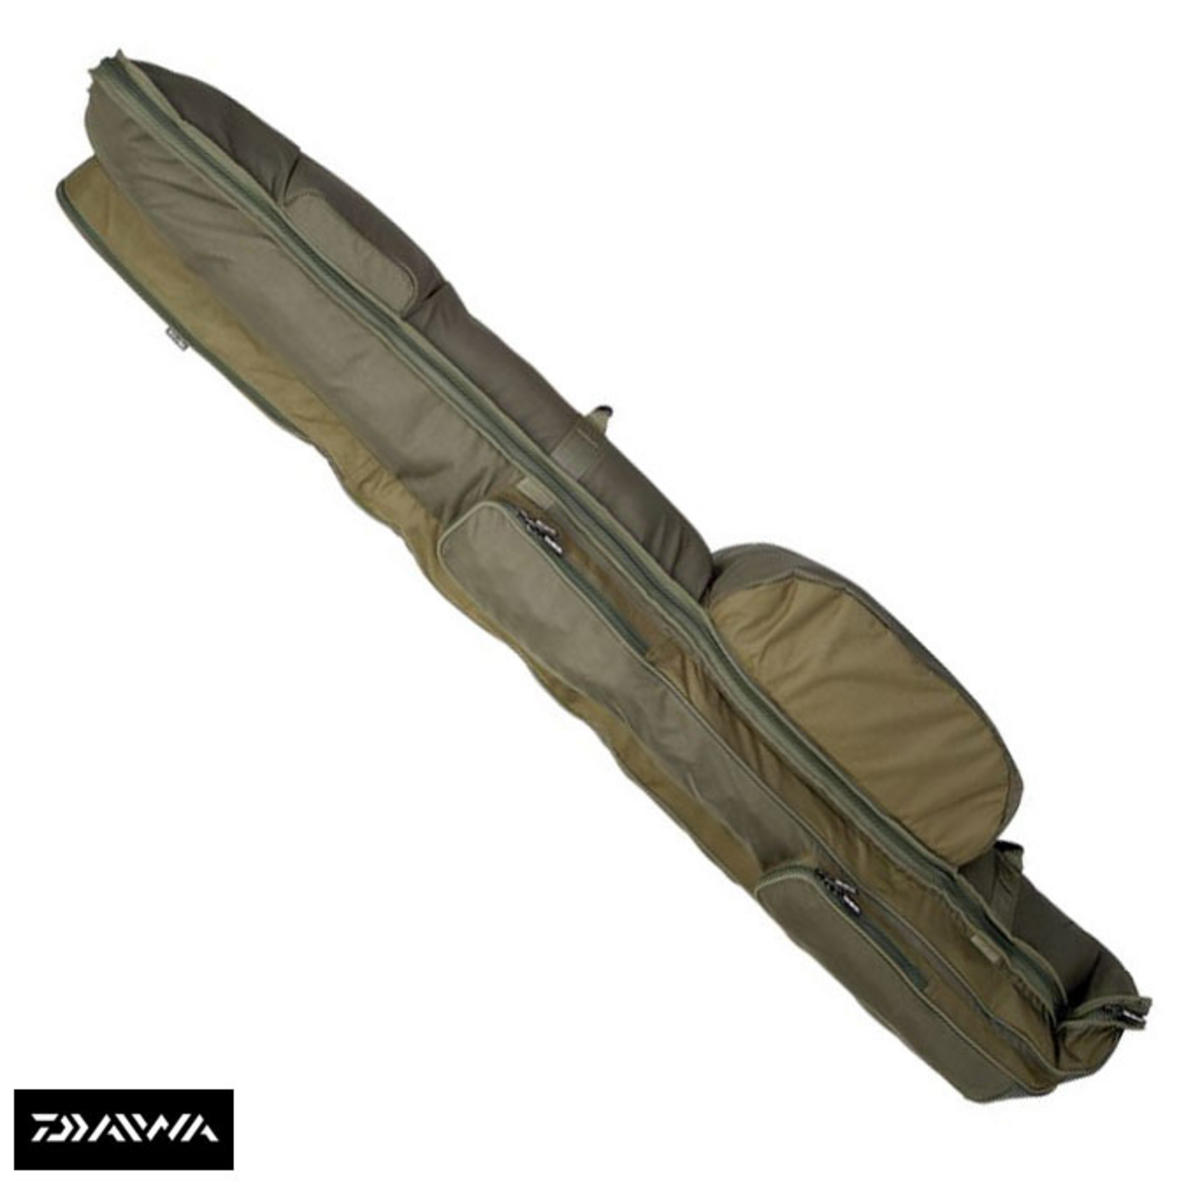 Special Clearance Offer Daiwa Mission 3 Rod Holdall - DM3RH13